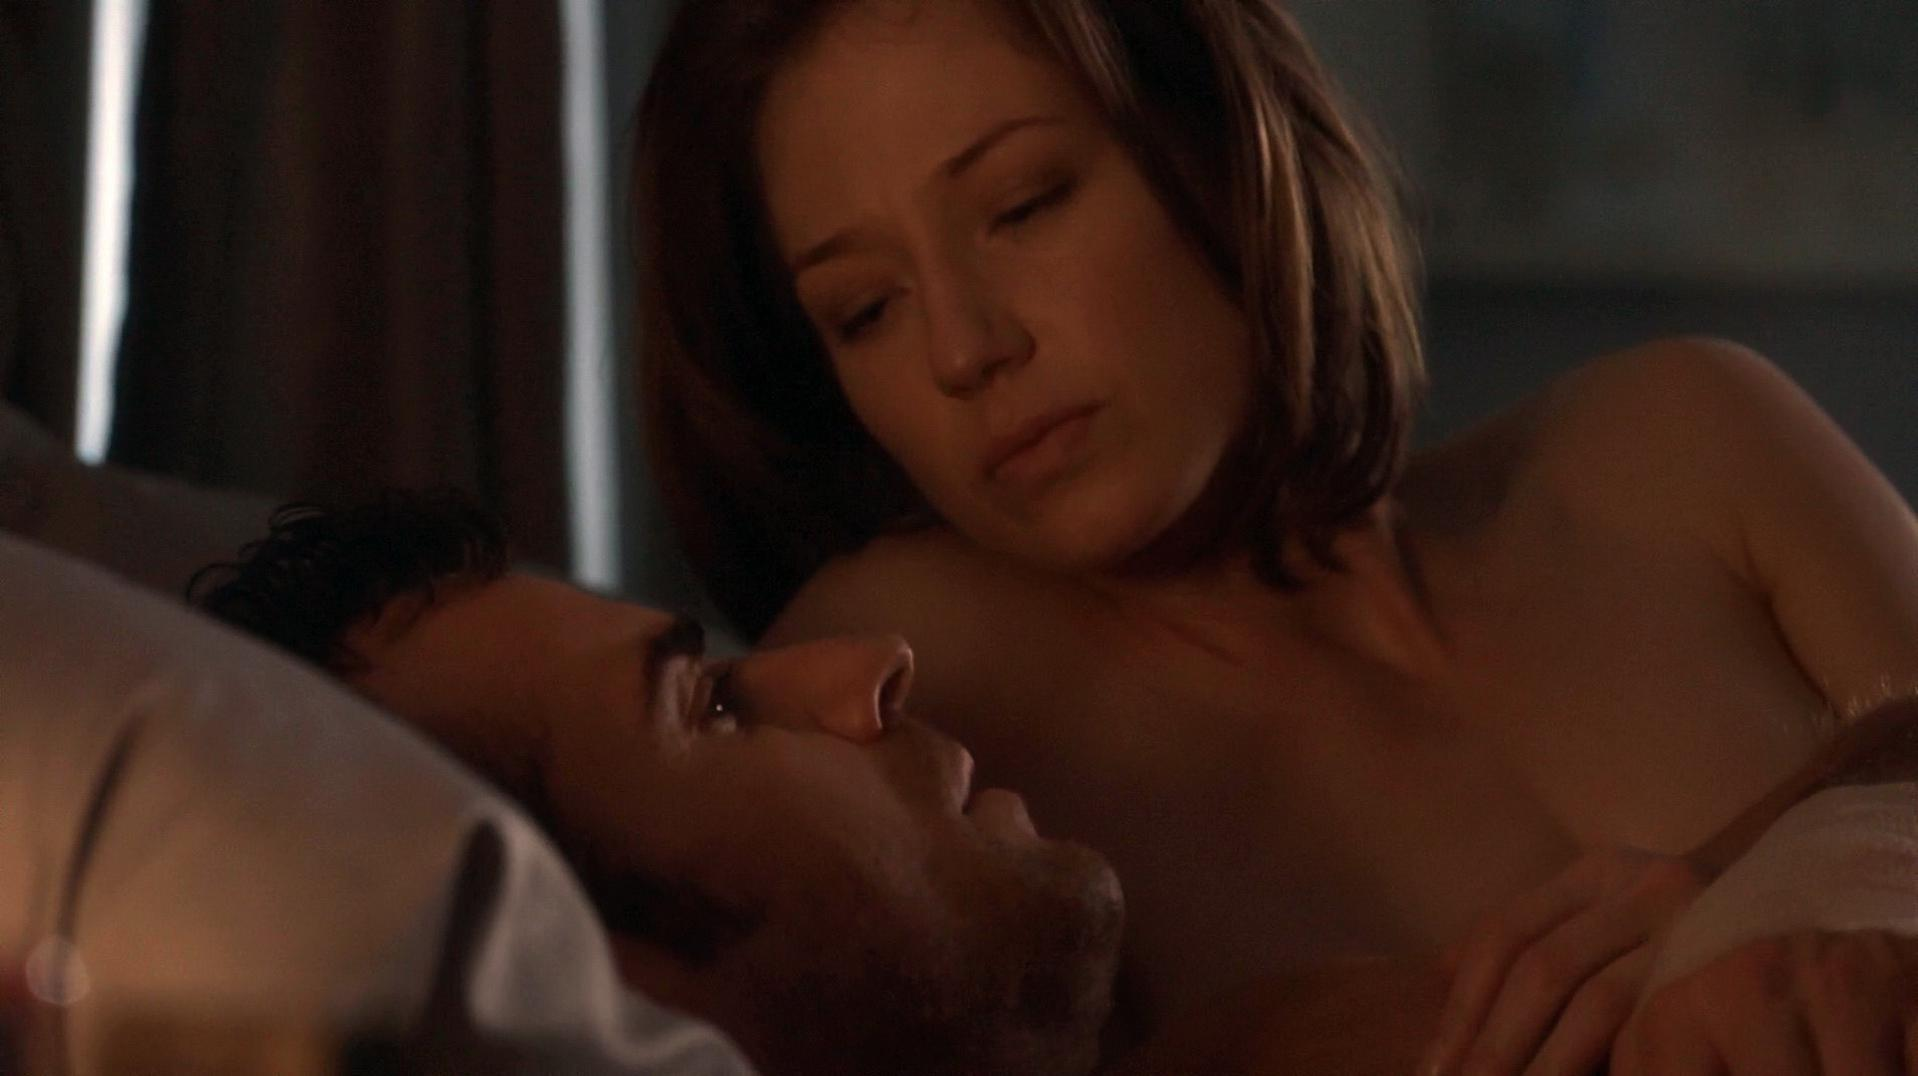 Carrie Coon nude - The Leftovers s01e07 (2014)